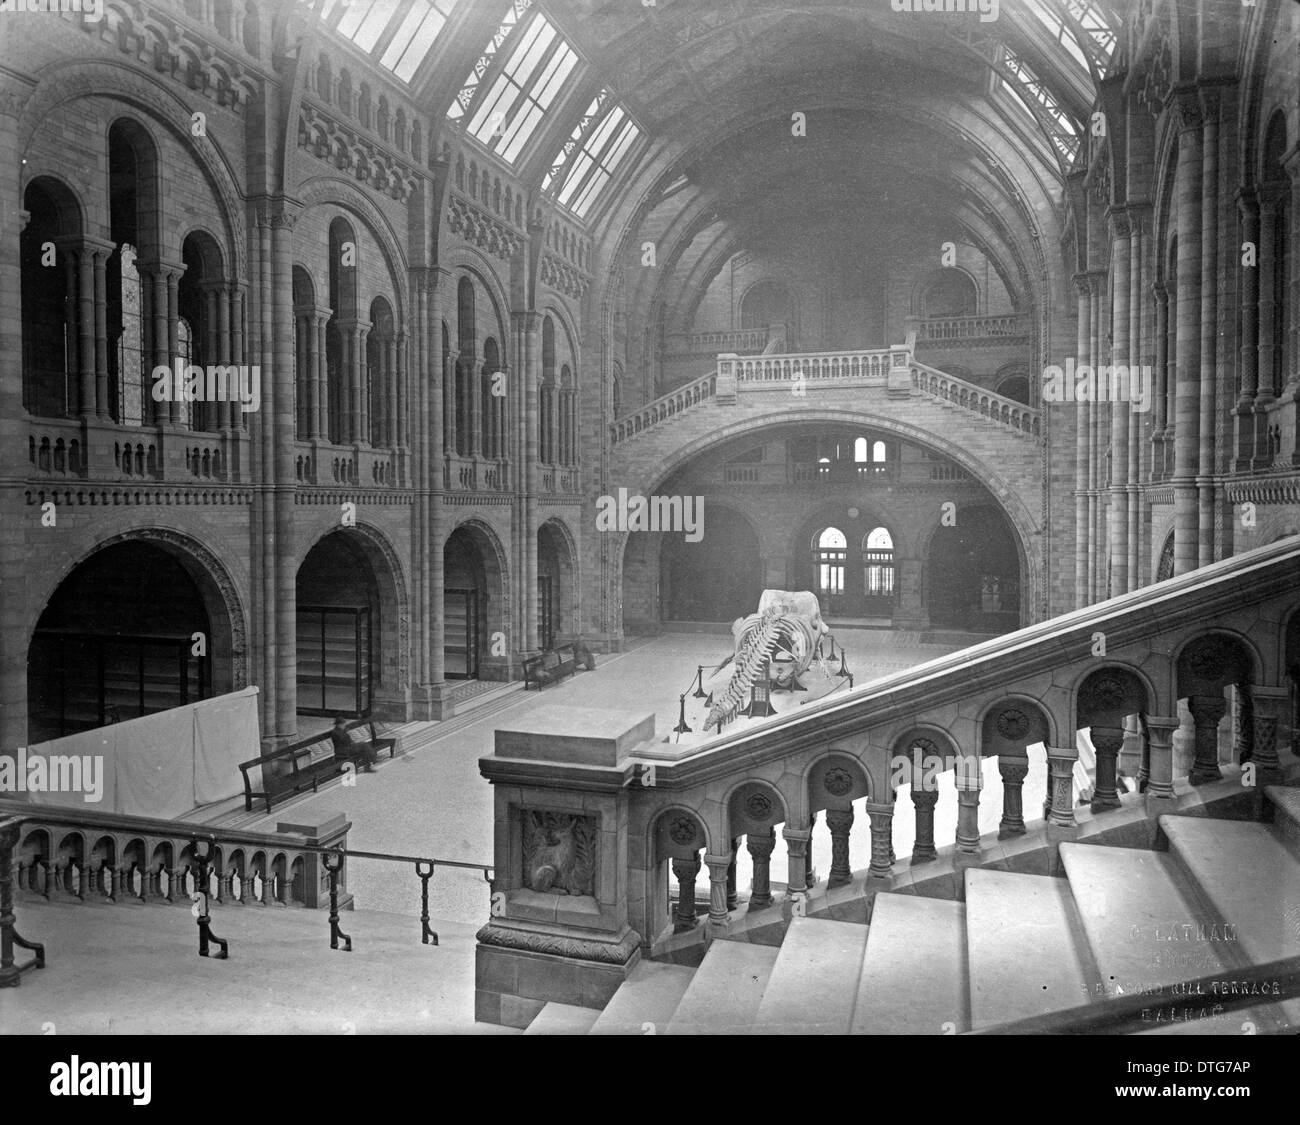 Central Hall. 1882 - Stock Image